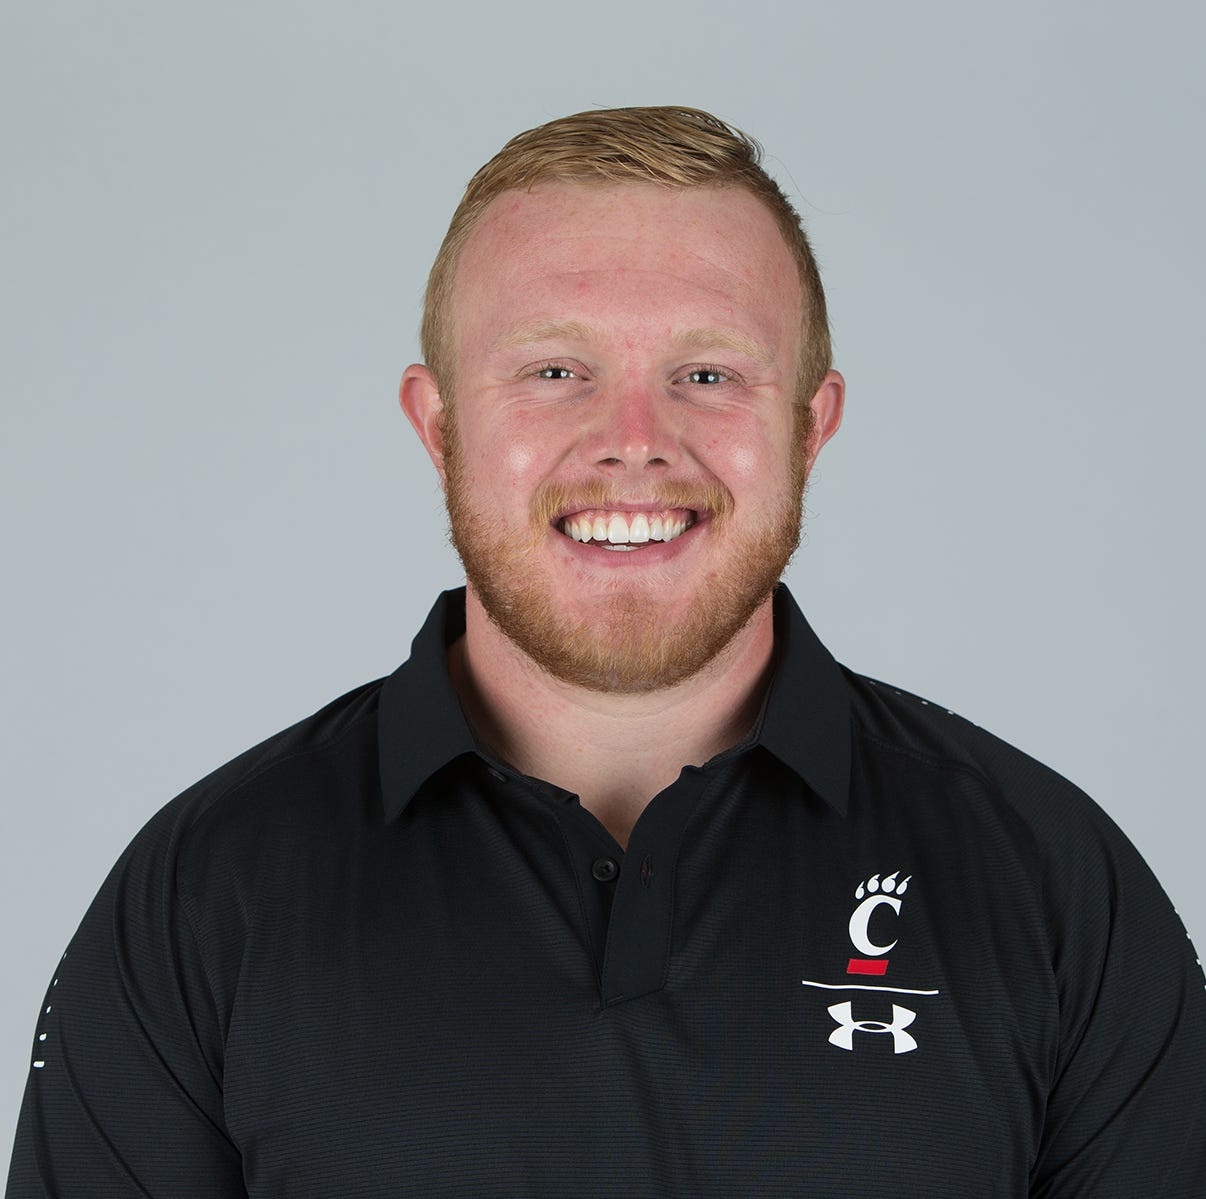 2018 UC Bearcats football: Long snapper Zach Wood has battled hard to be unrecognized